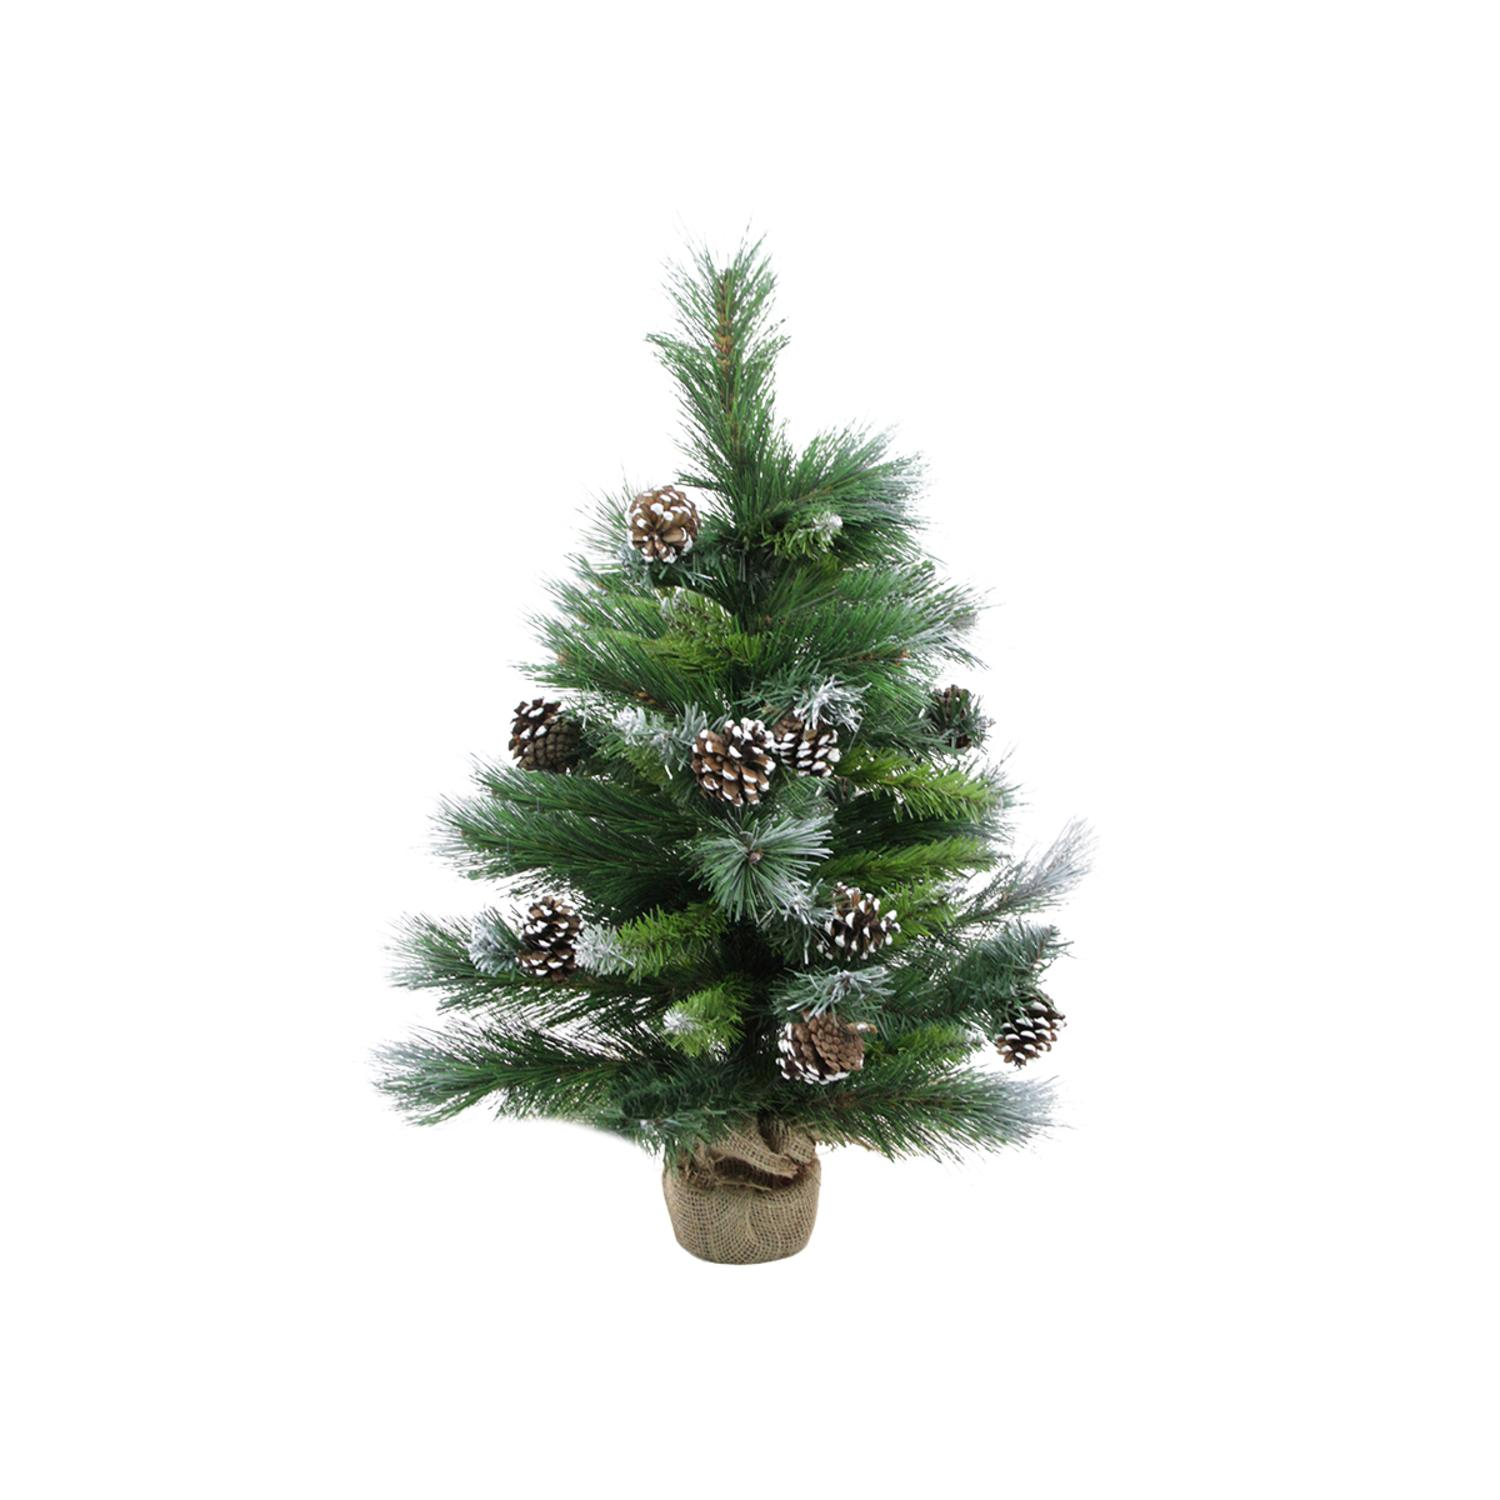 Country Pines Christmas Tree Farms: 2' Frosted Glacier Pine Artificial Christmas Tree In